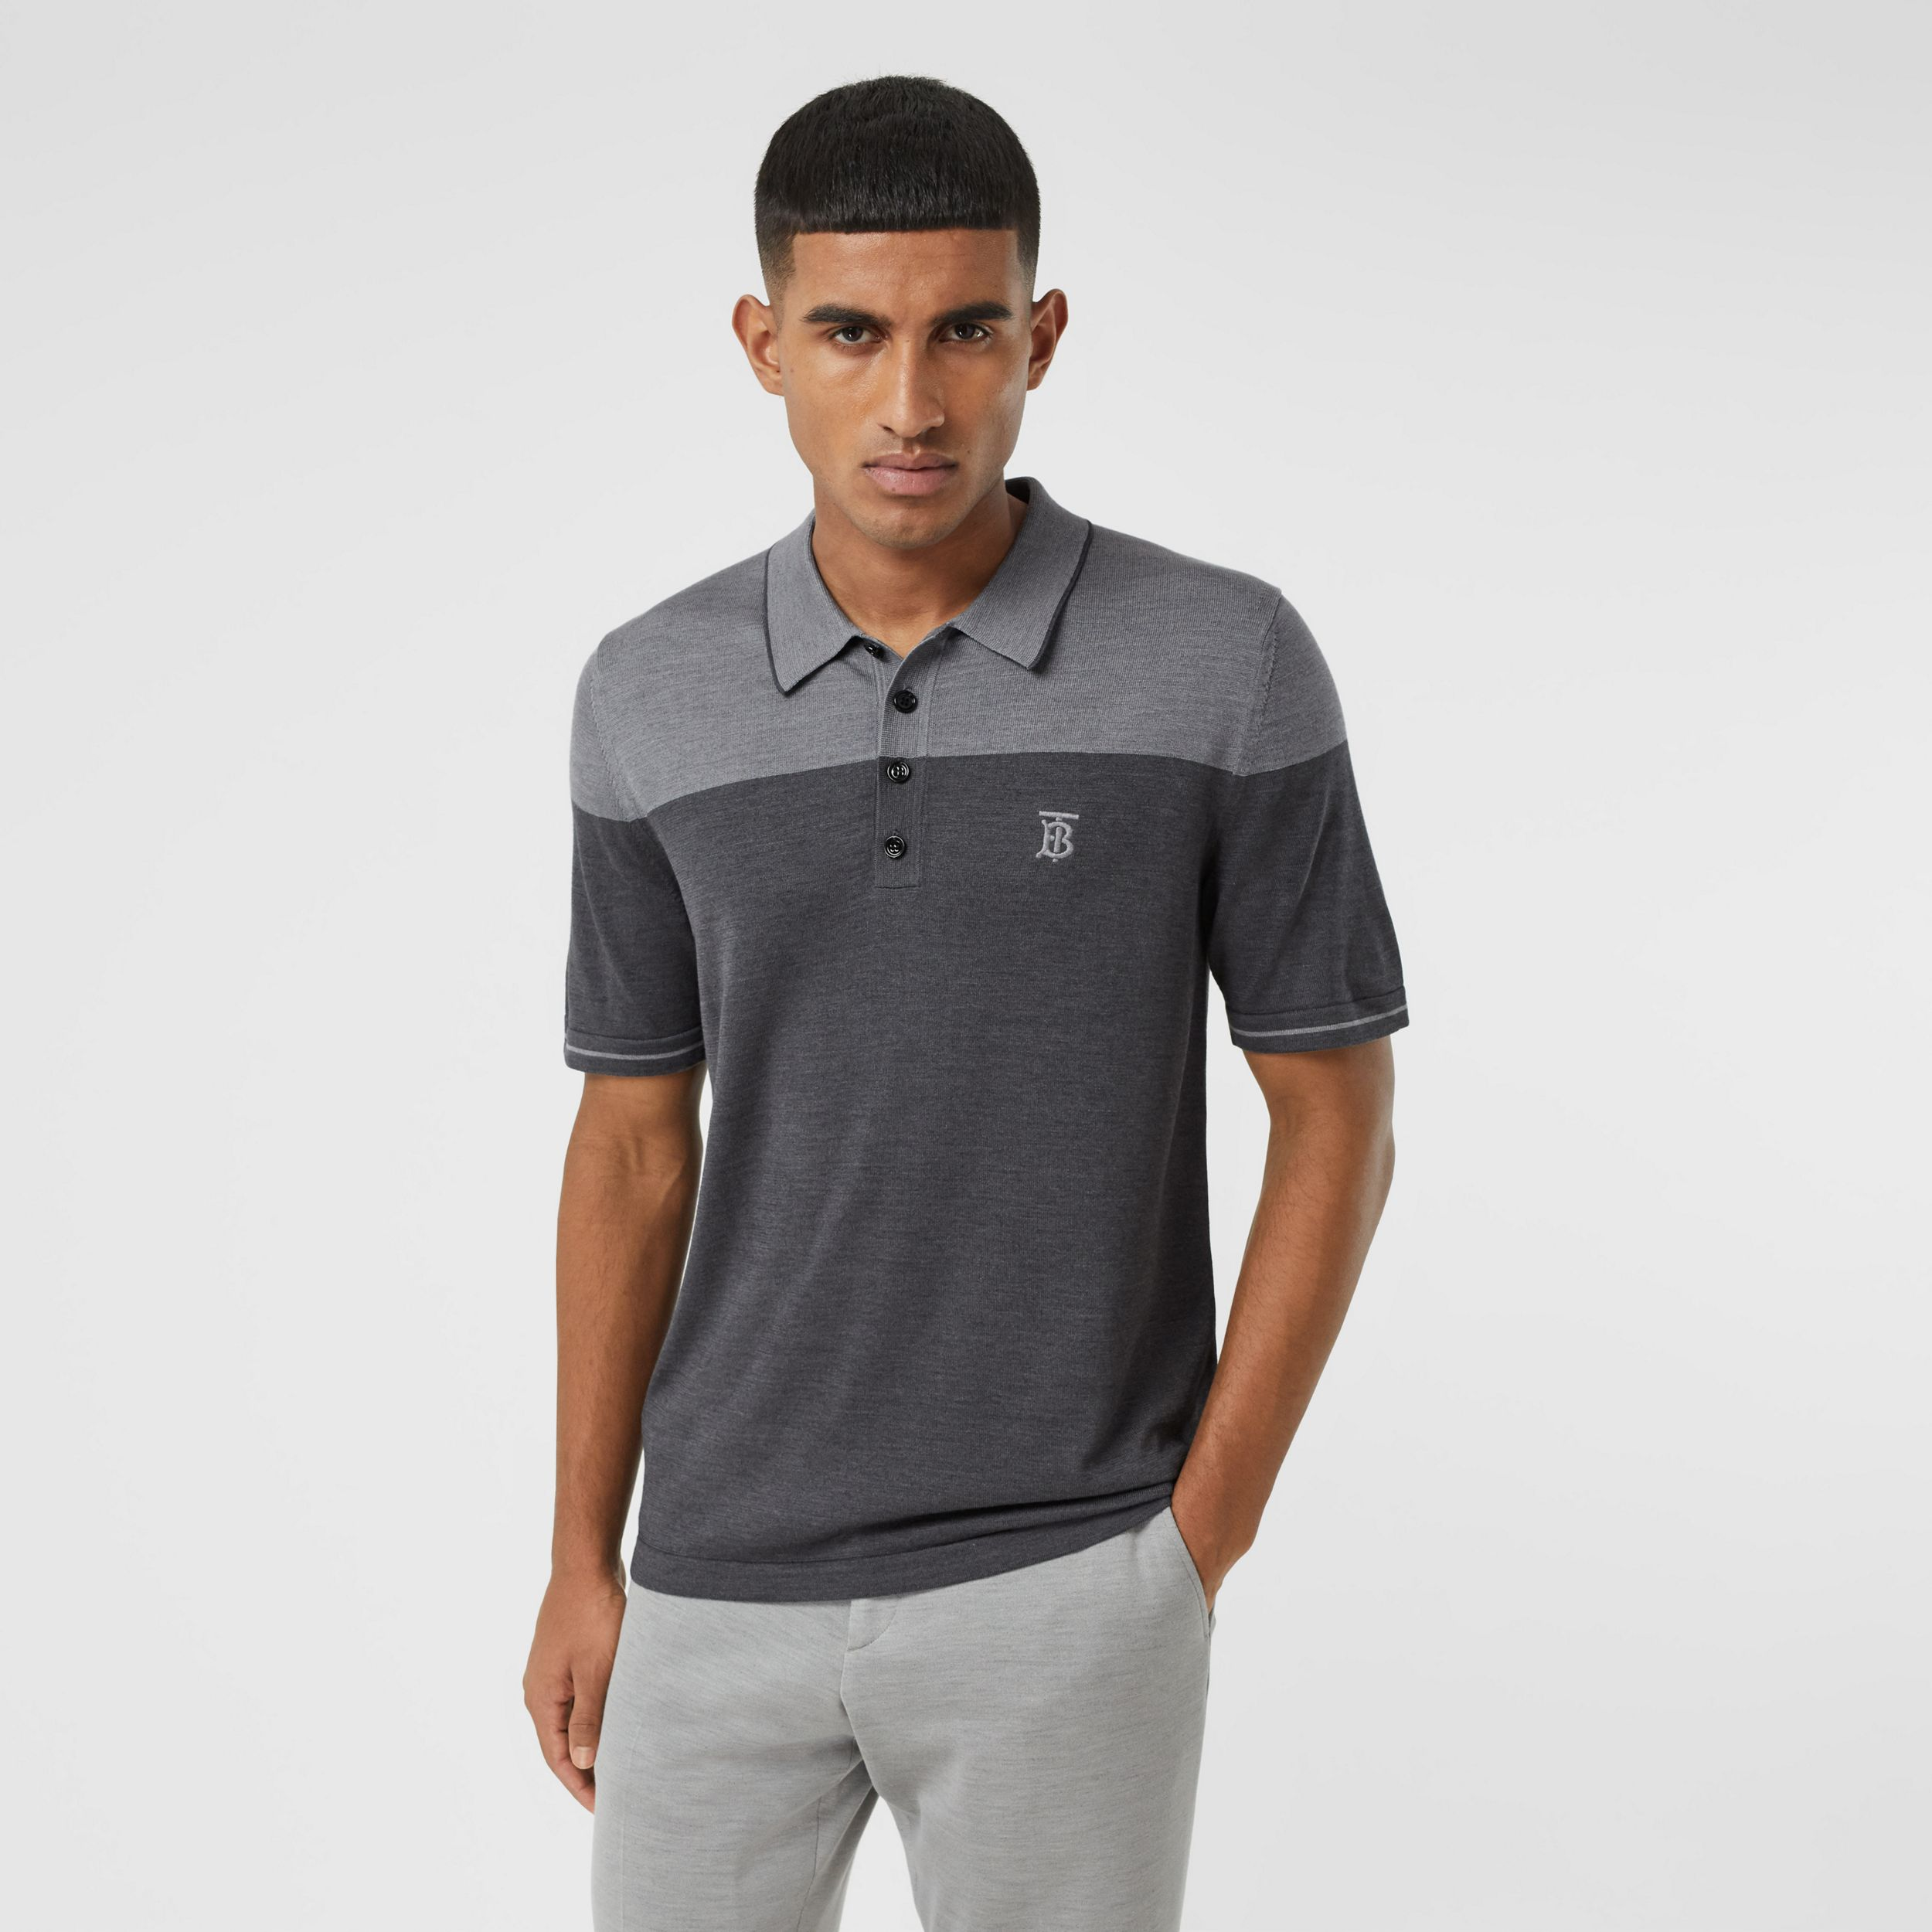 Monogram Motif Two-tone Silk Cashmere Polo Shirt in Charcoal - Men | Burberry - 1